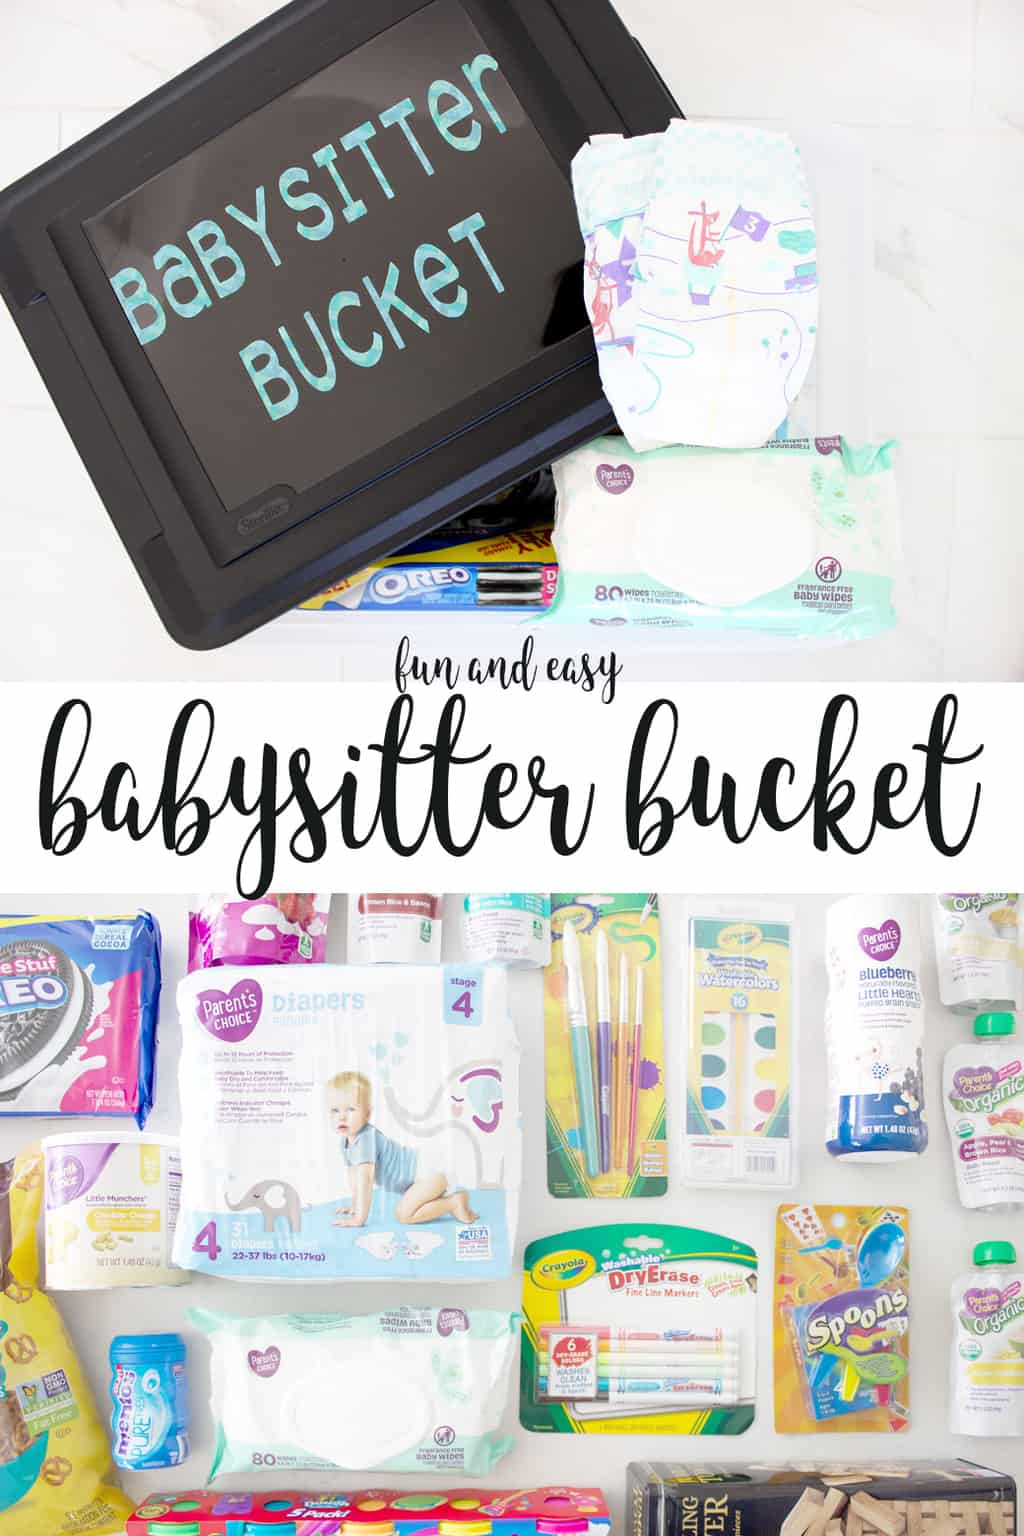 How fun is this babysitter bucket?! It is filled with all the essential items a babysitter will need to take care of the kids, plus tons of fun babysitting activities to keep them happy and occupied!